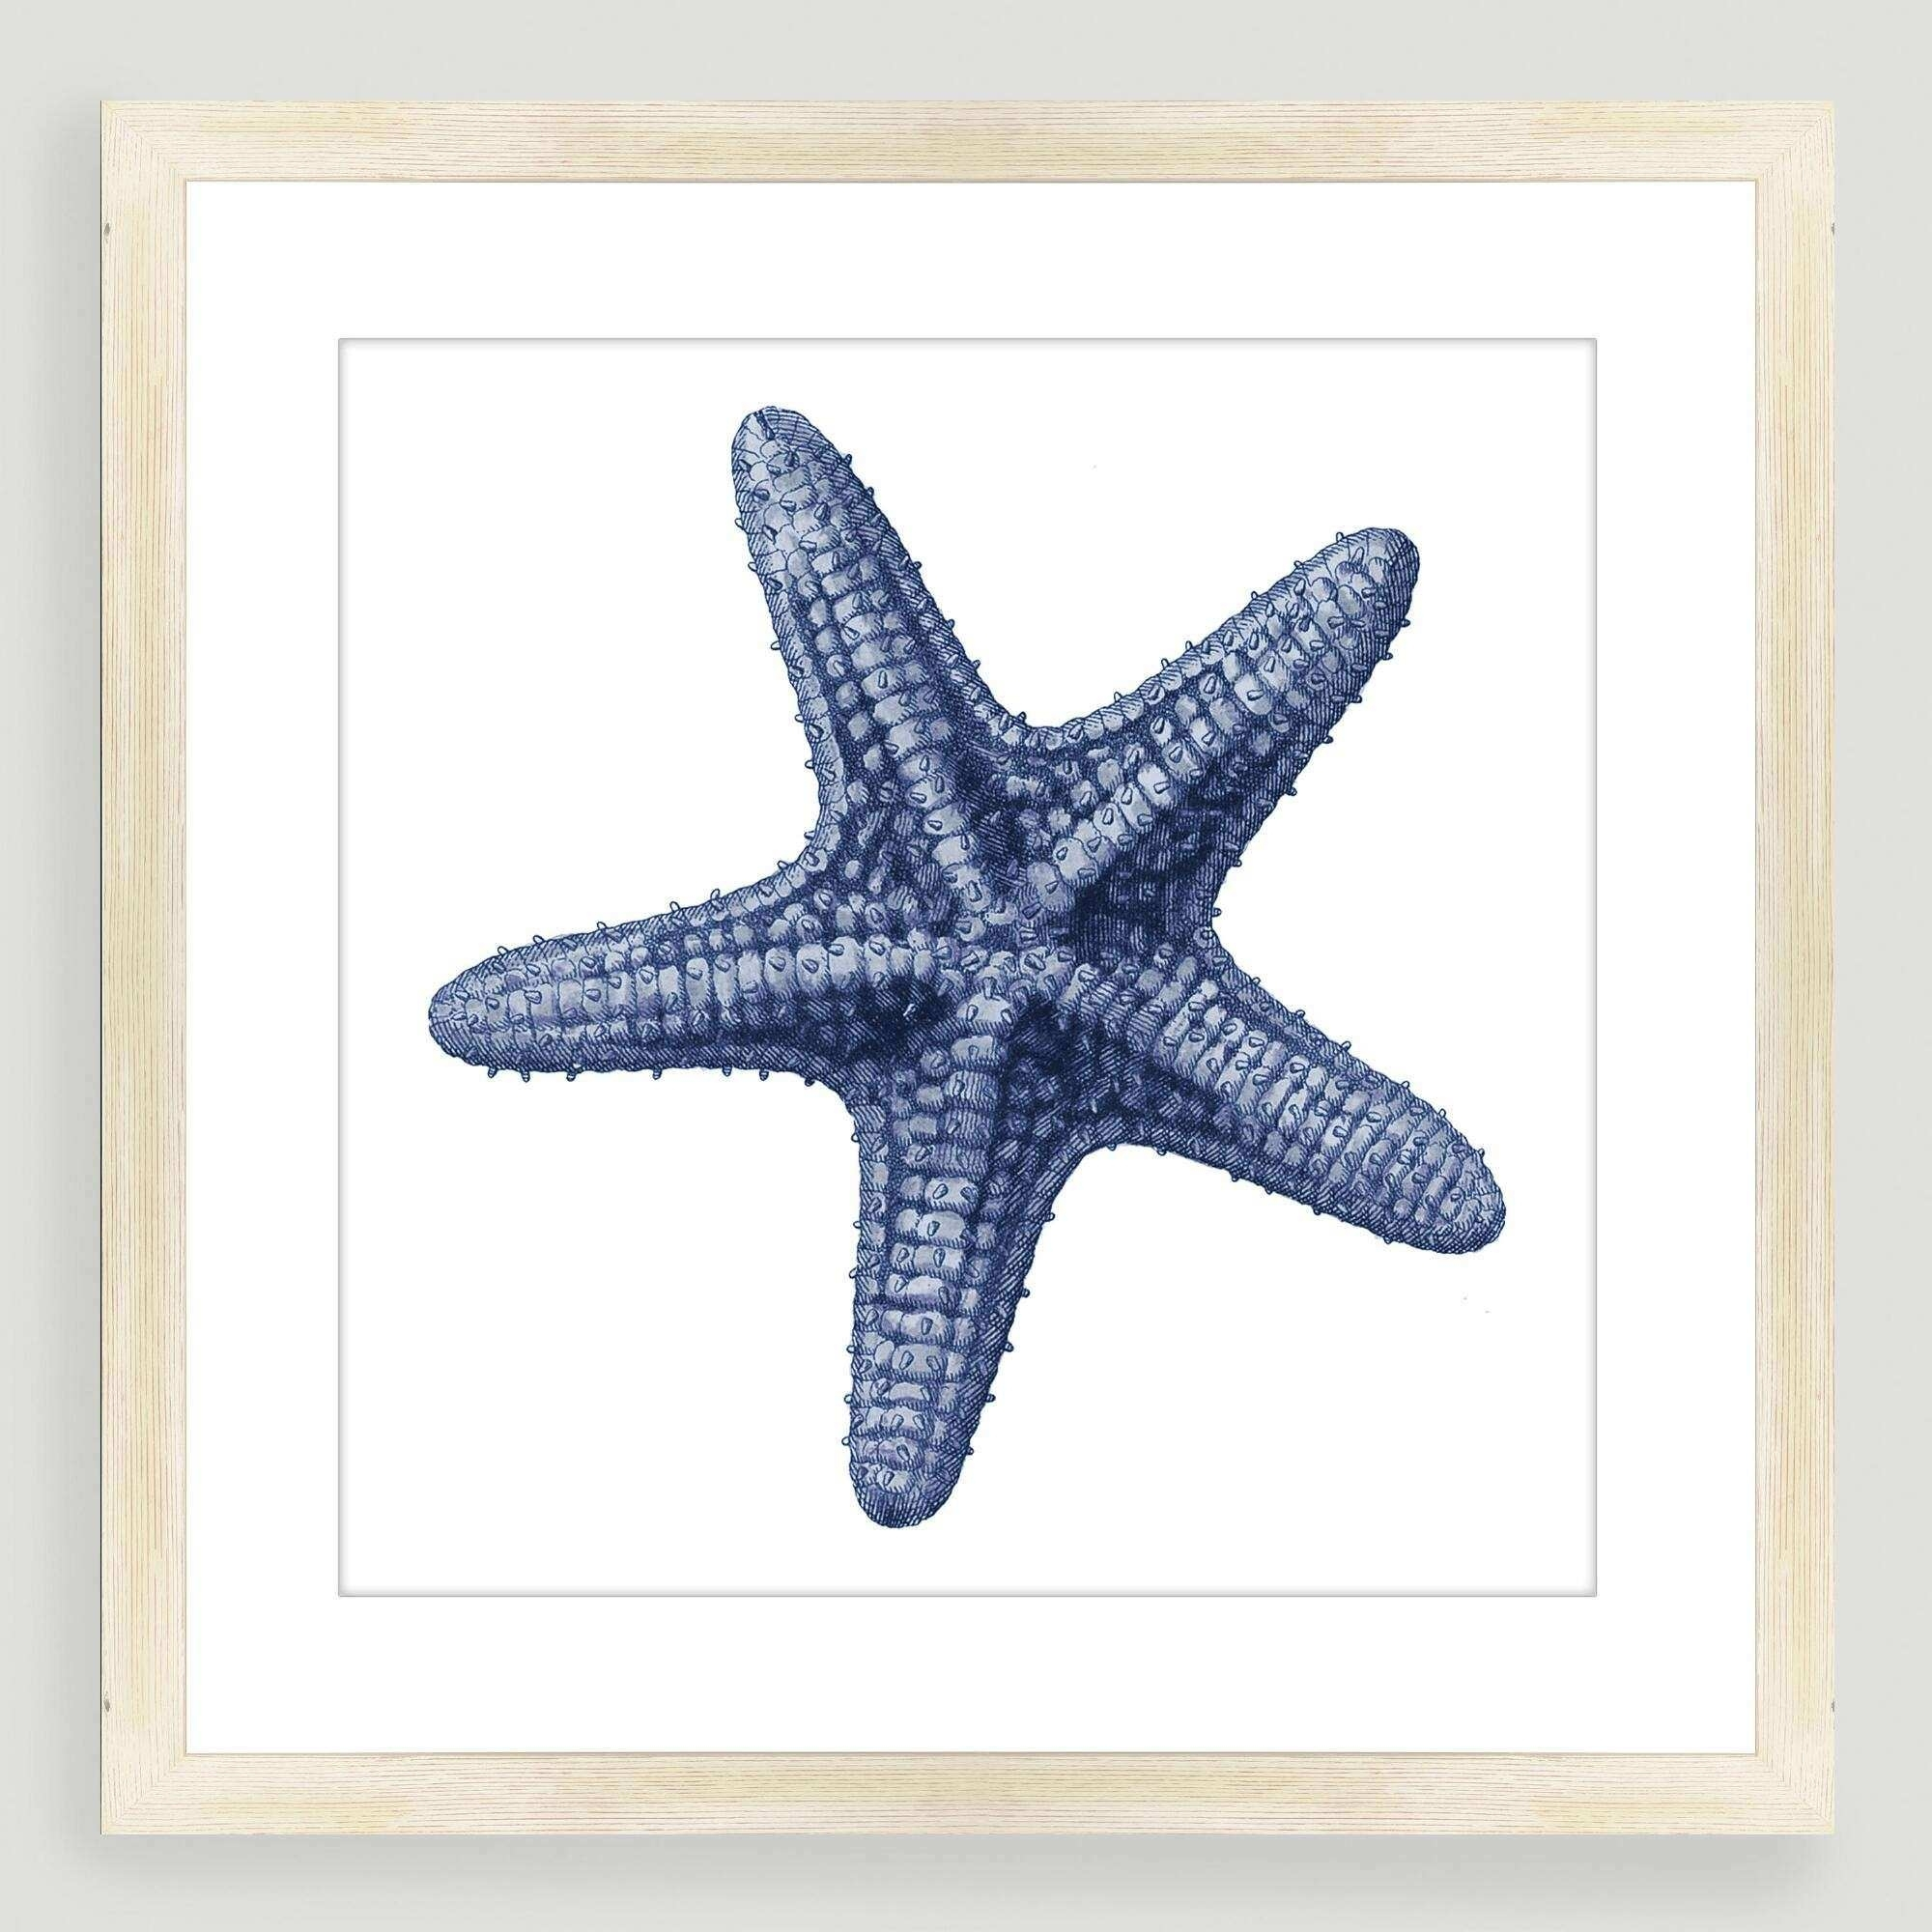 Ocean Wall Art New Vintage Style Starfish Sea Life Wall Art | Wall With Regard To Recent Sea Life Wall Art (View 8 of 15)